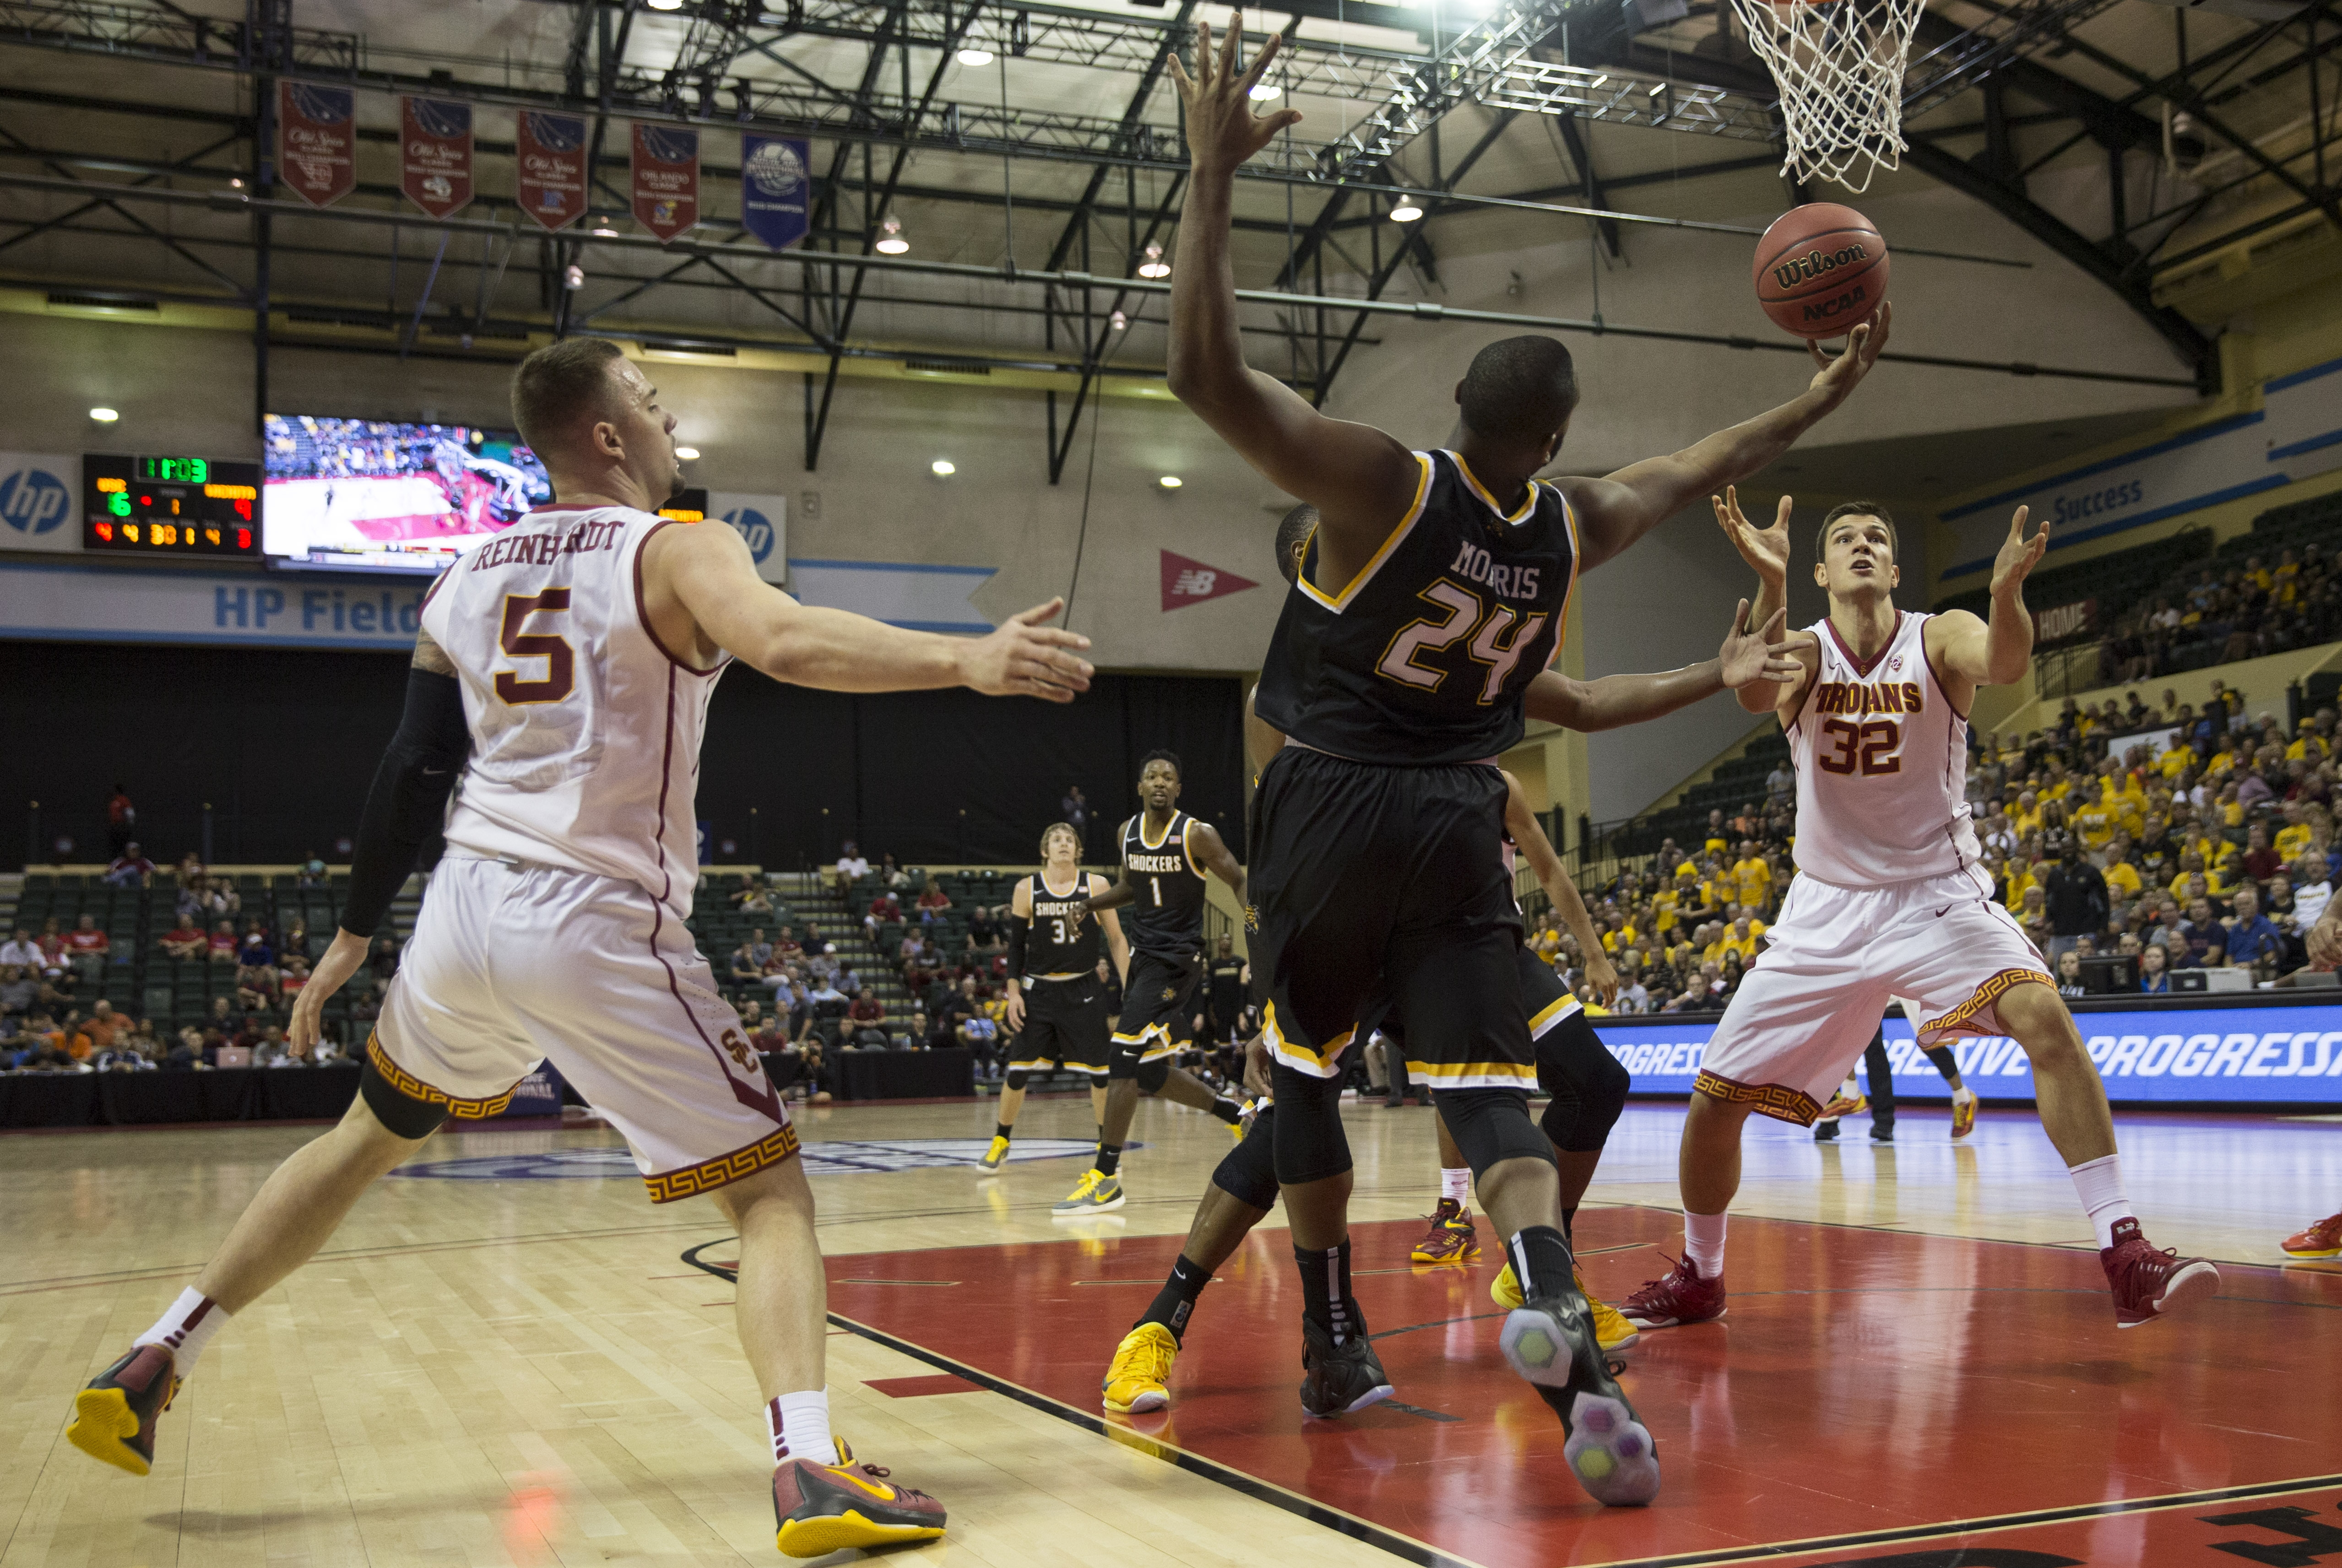 Wichita State forward Shaquille Morris (24), USC guard Katin Reinhardt (5) and forward Nikola Jovanovic (32) all vie for the ball during the first half of the Advocare Invitational college basketball game Thursday, Nov. 26, 2015, in Orlando, Fla.   (AP Ph